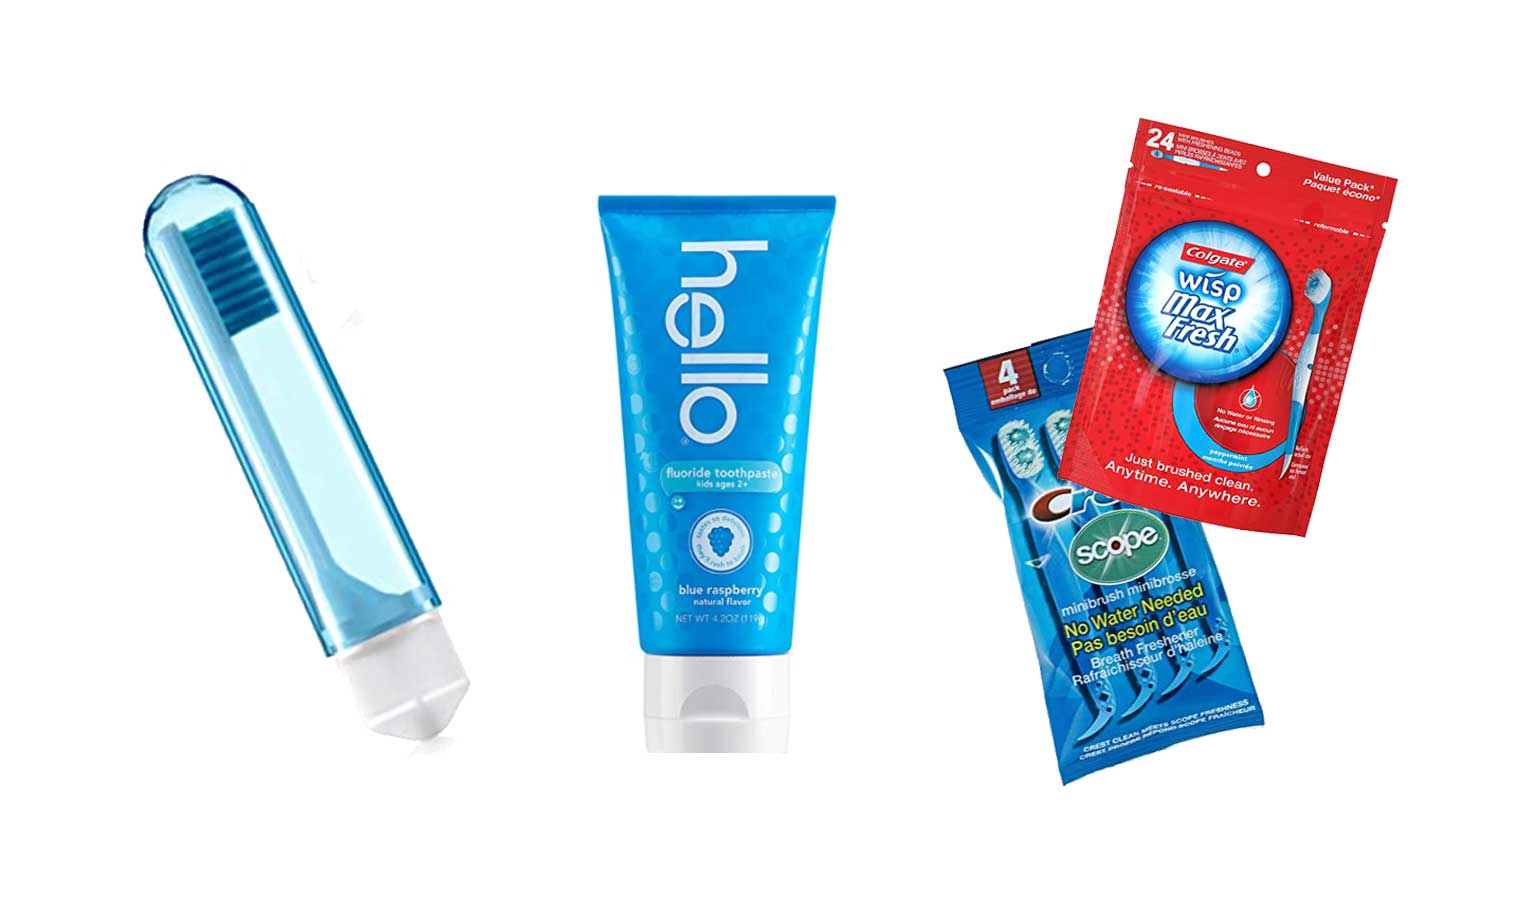 braces care kit travel-sized toothpaste and toothbrush